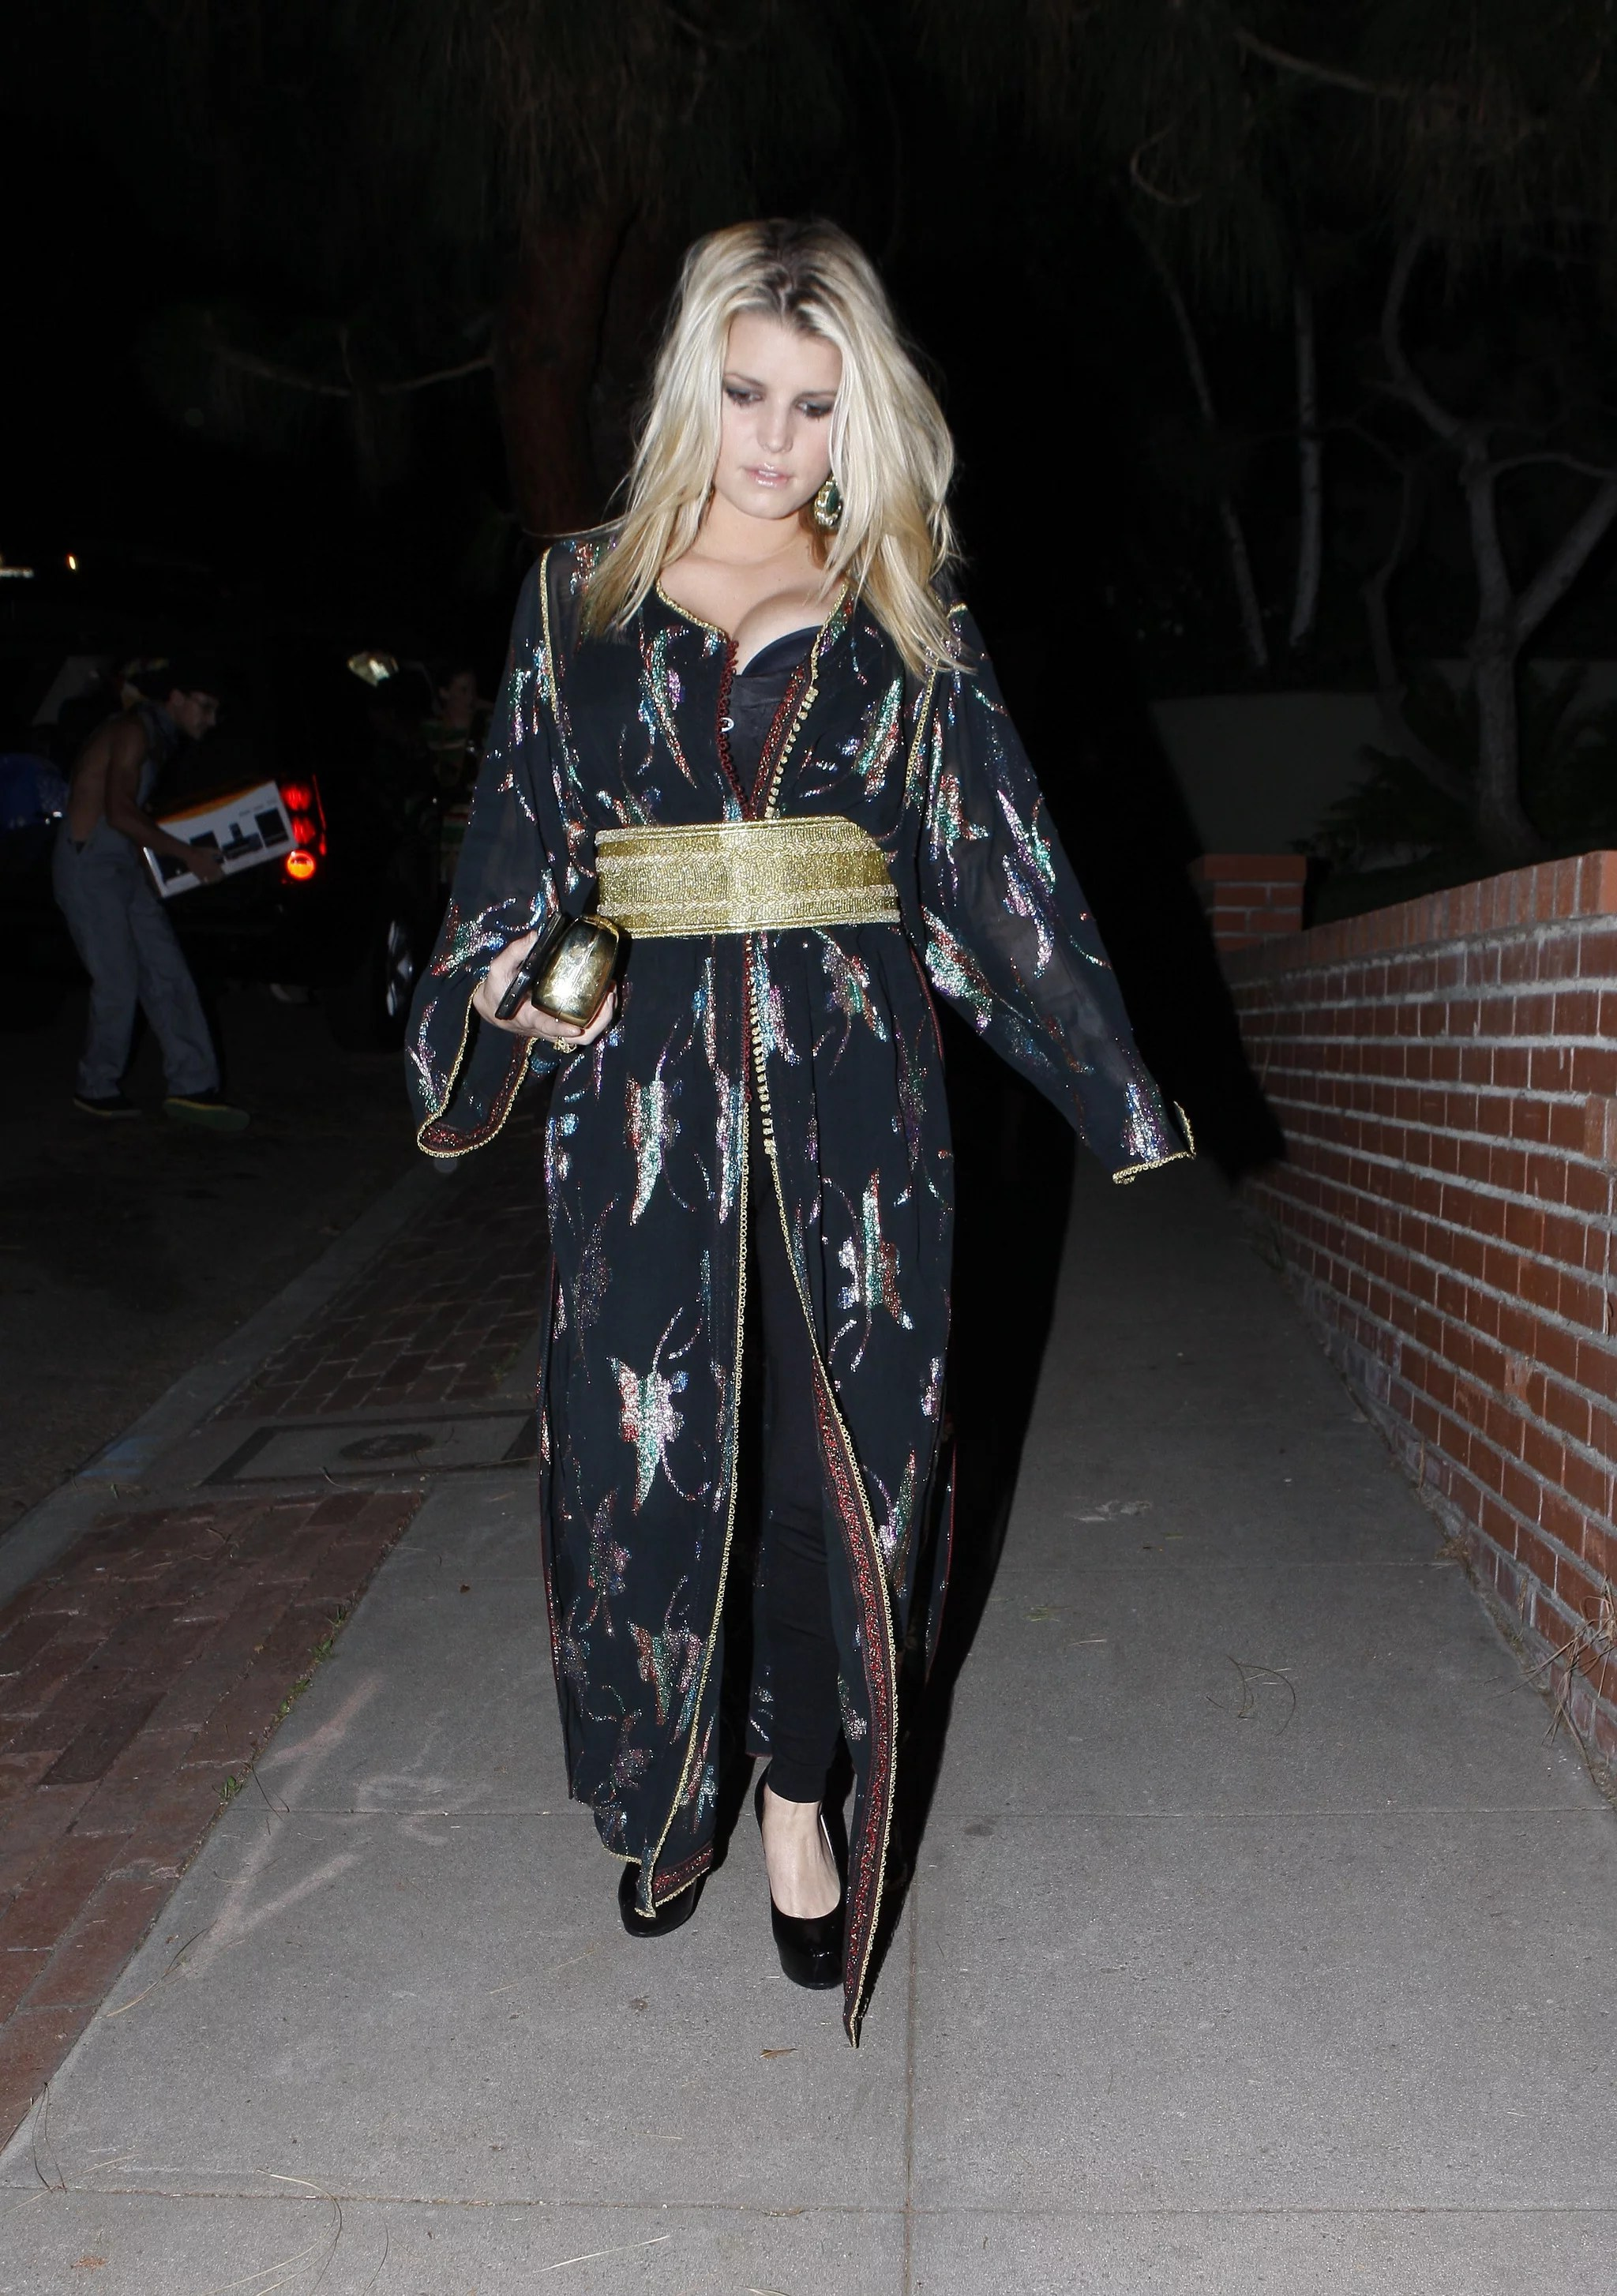 Photos of Jessica Simpson Barefoot Out on Halloween